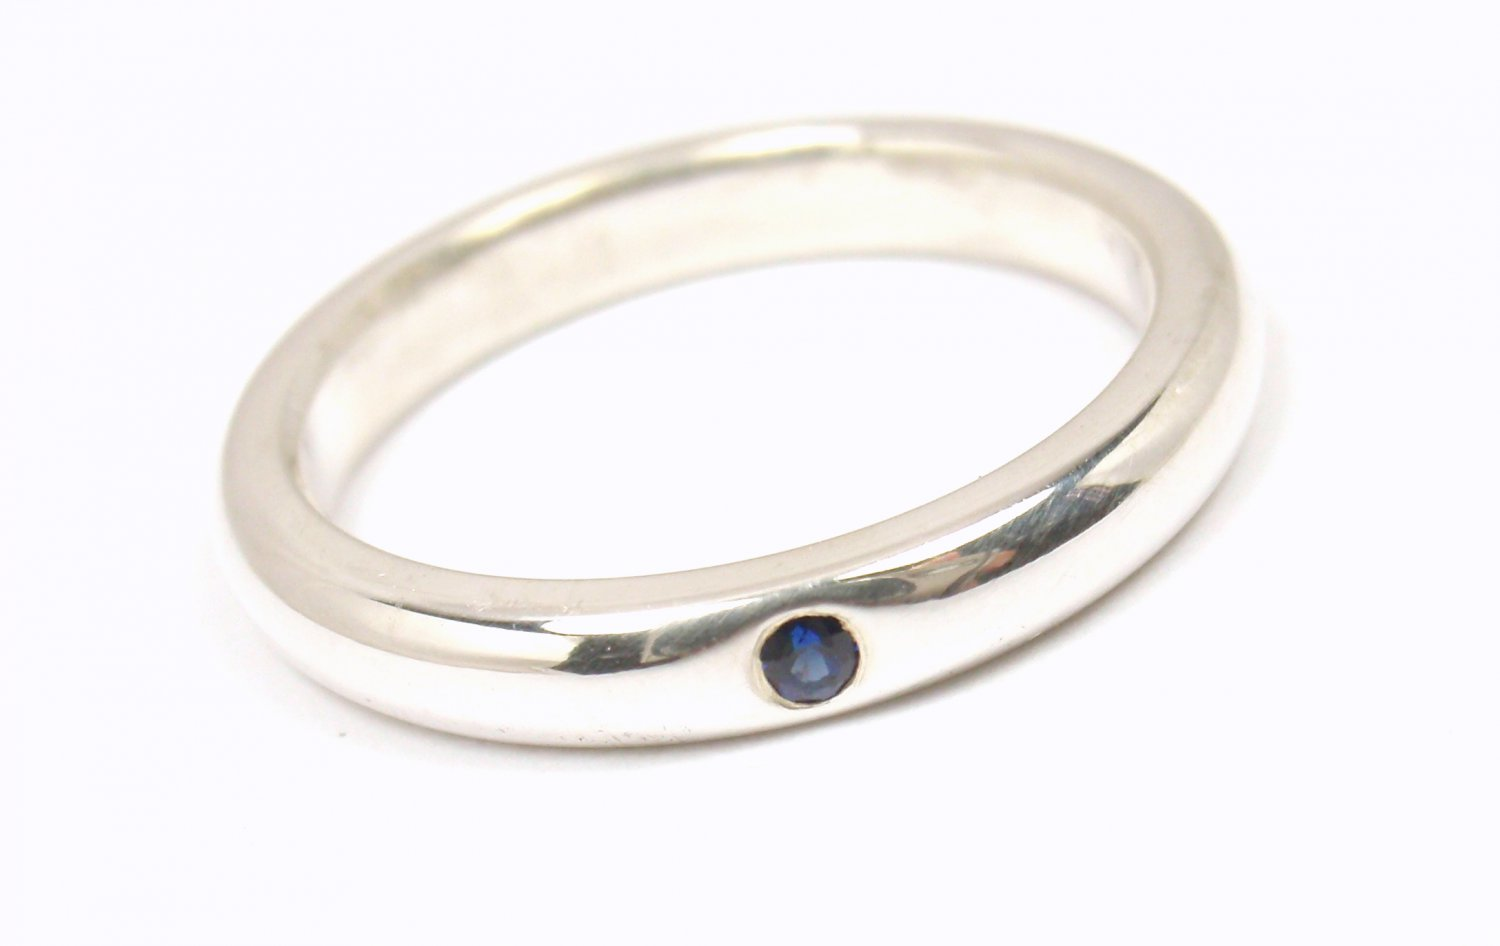 Rare Tiffany & Co Peretti Sterling Silver Blue Sapphire Stacking Band Ring Size 5